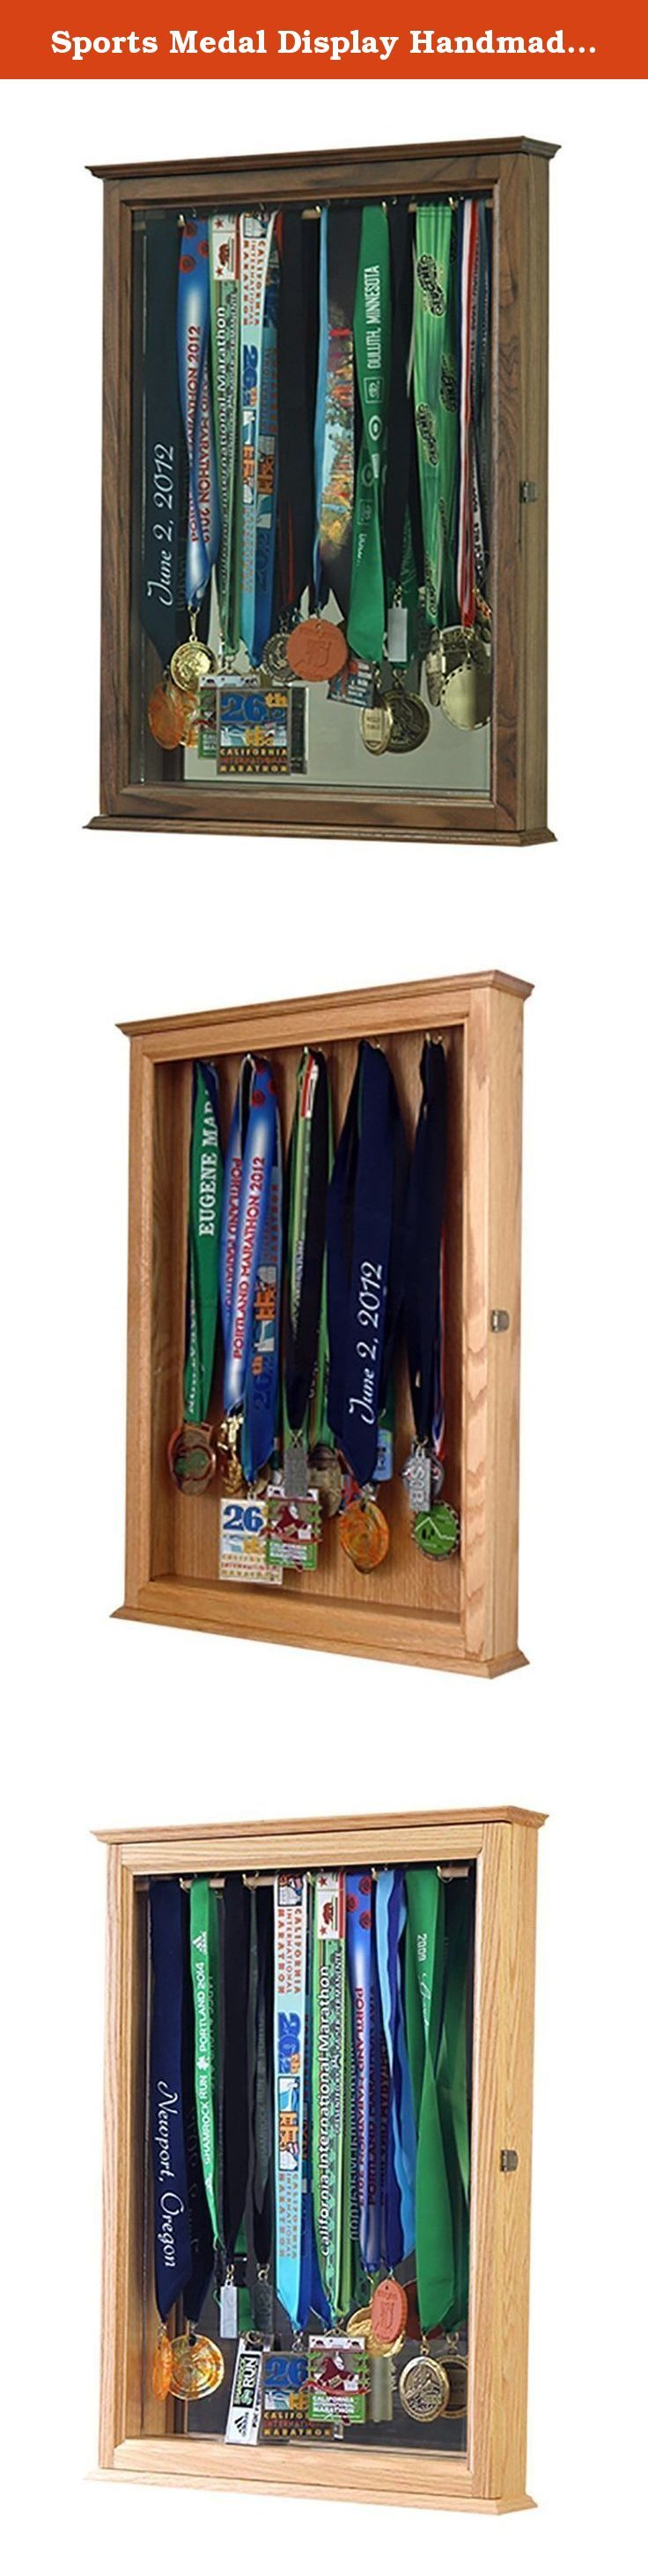 Sports Medal Display Handmade Out Of Solid Walnut in the USA. You will find many products available on-line for hanging medals, but none of them are made with the care and quality of this cabinet which is made in our Oregon workshop. This is the ultimate complement to the athlete's accomplishments! Constructed of solid Walnut hardwood with a glass door to protect contents. Finisher medals hang from 5 hooks. Cabinet comes equipped with brass door hinges and a high quality door latch. It is...